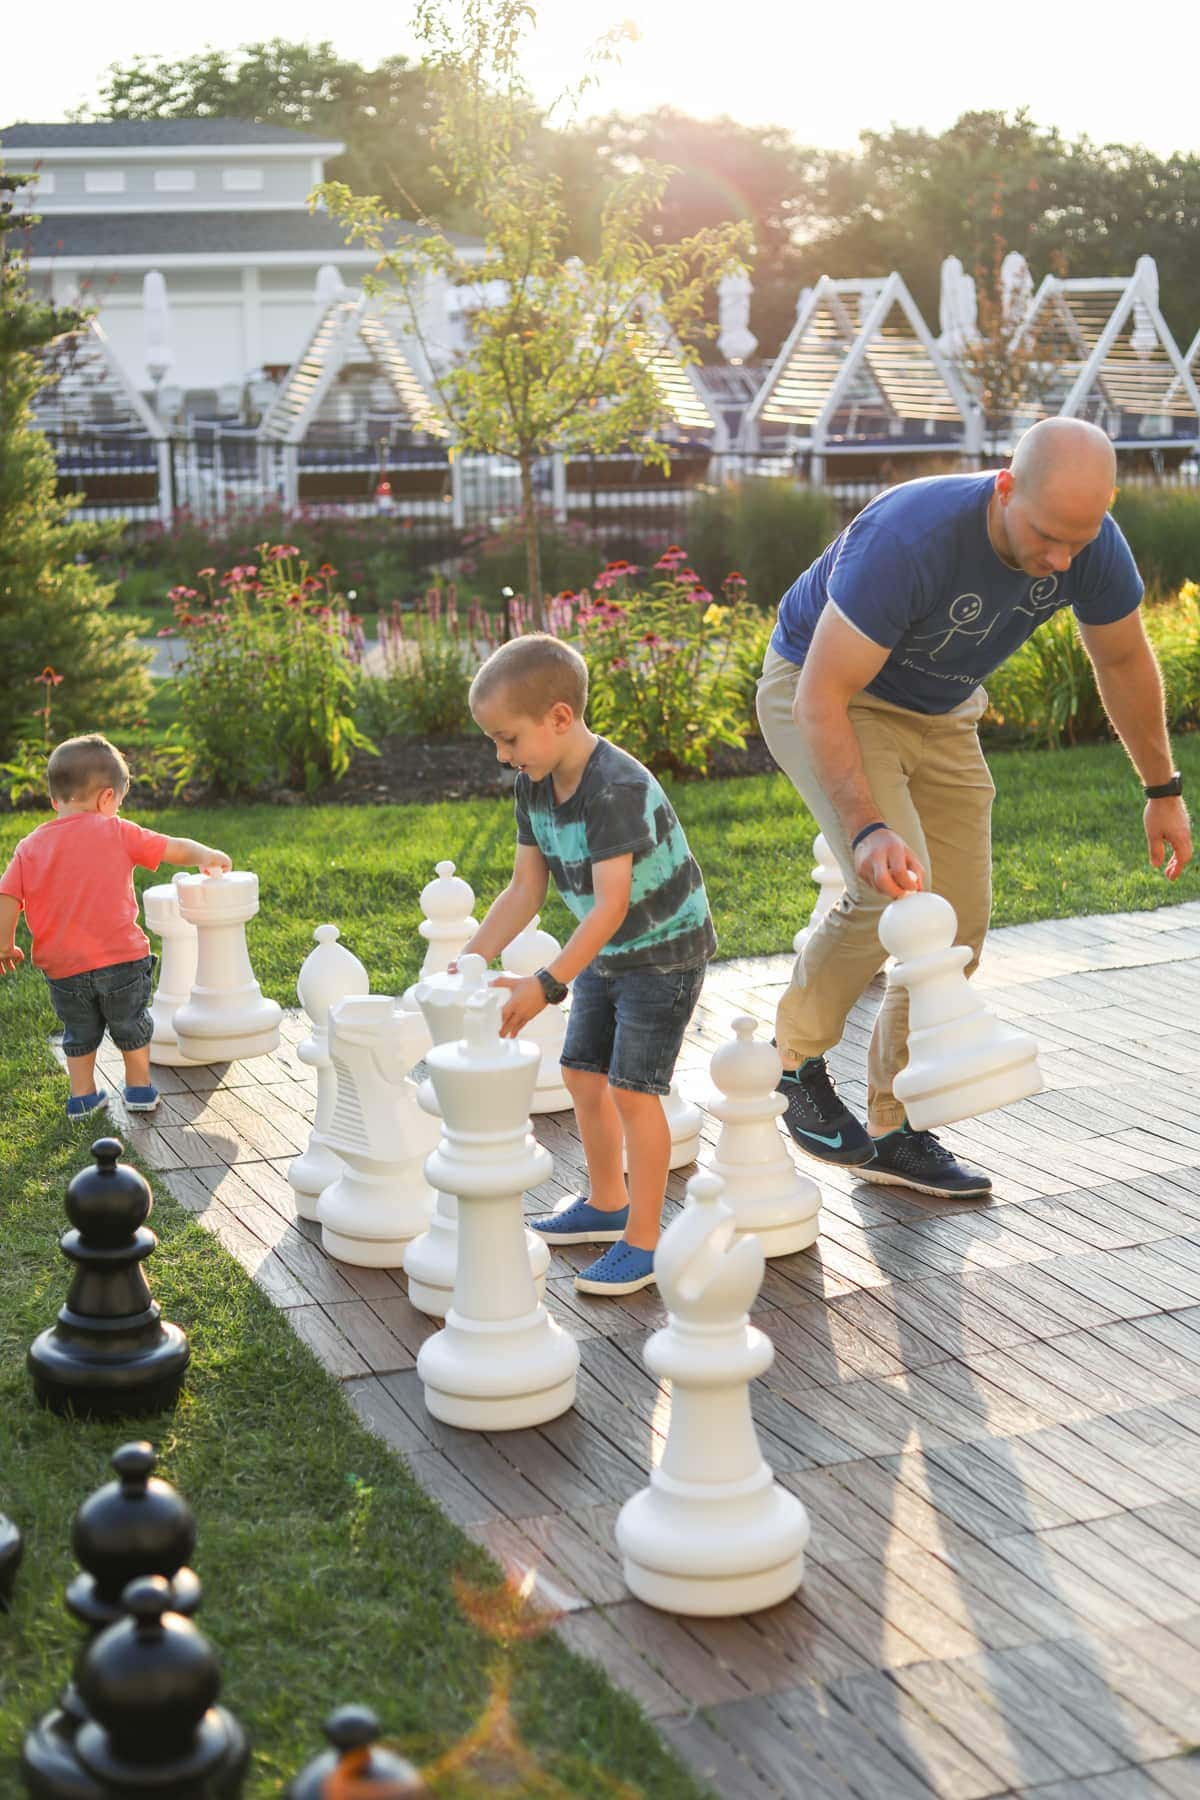 Gordon and the kids playing with the giant chess set